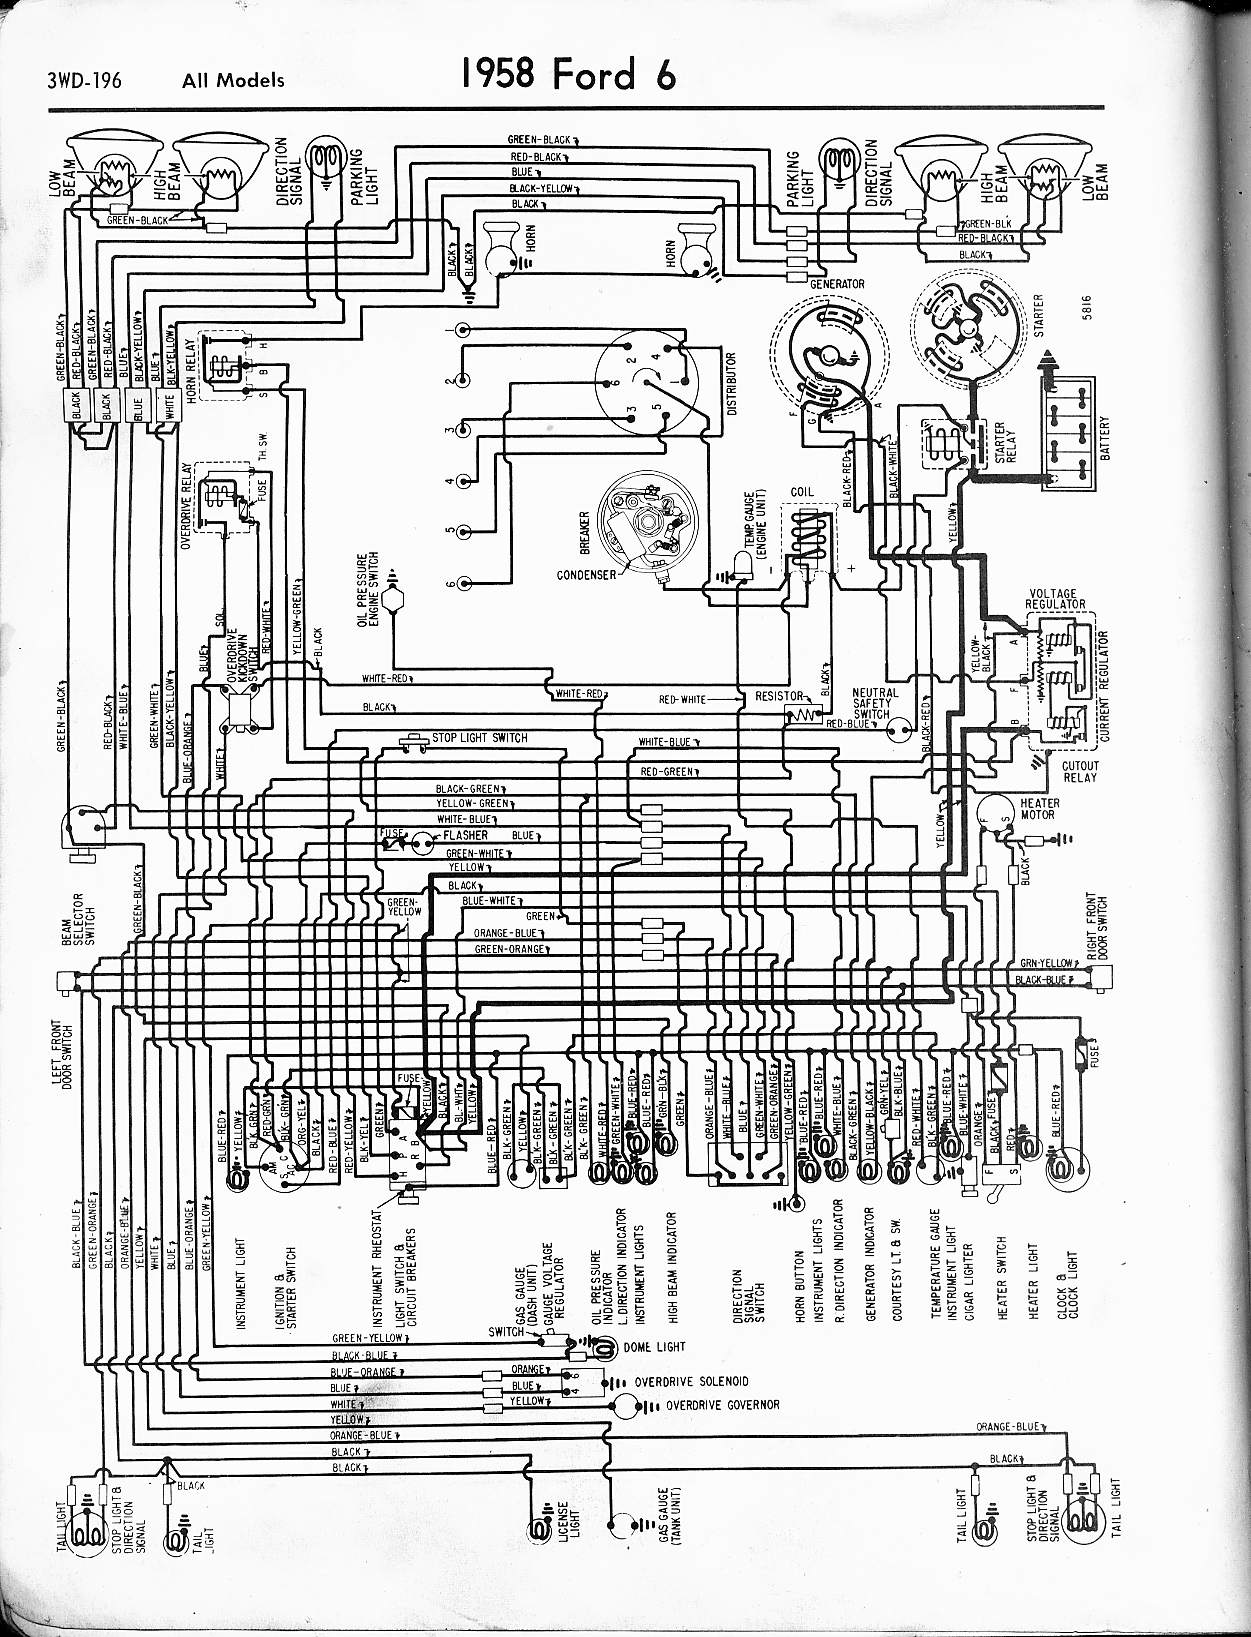 Wiring Diagram 1999 Ford F650 Library Kenmore Dryer Parts Get Domain Pictures Getdomainvidscom Schematics Detailed Rh Lelandlutheran Com Schematic